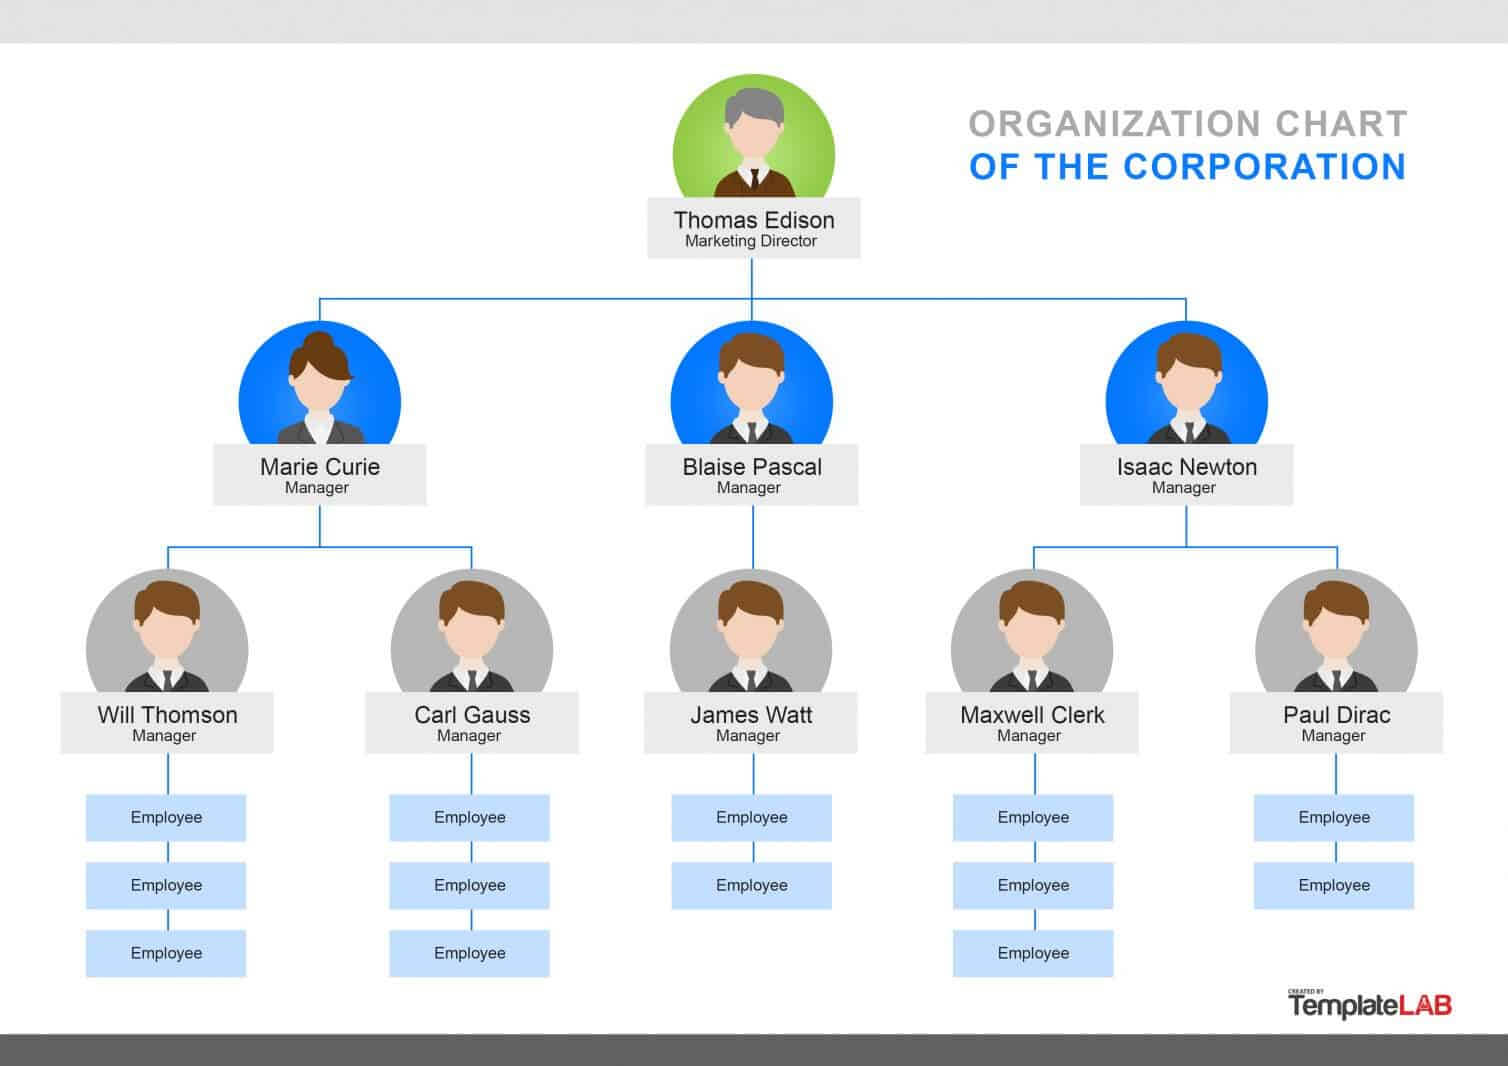 40 Organizational Chart Templates (Word, Excel, Powerpoint) Within Word Org Chart Template